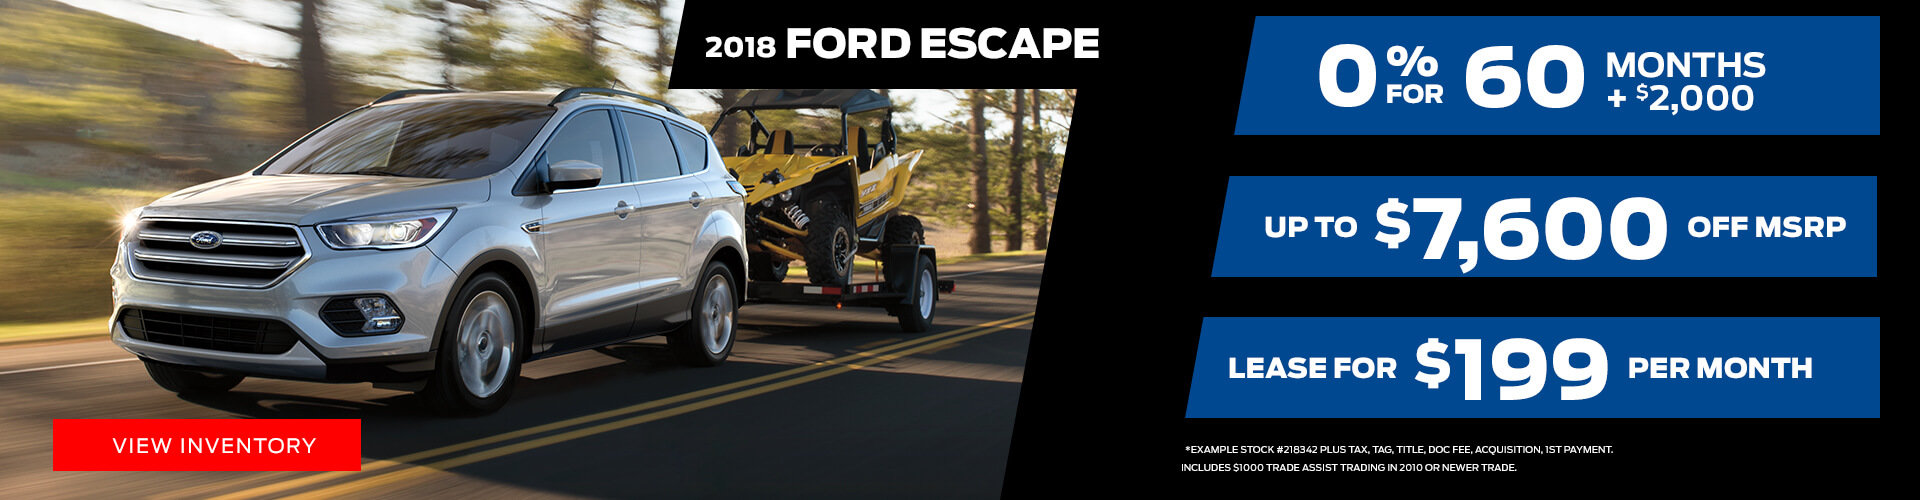 Special offer on 2018 Ford Escape 2018 Ford Escape Special Offer